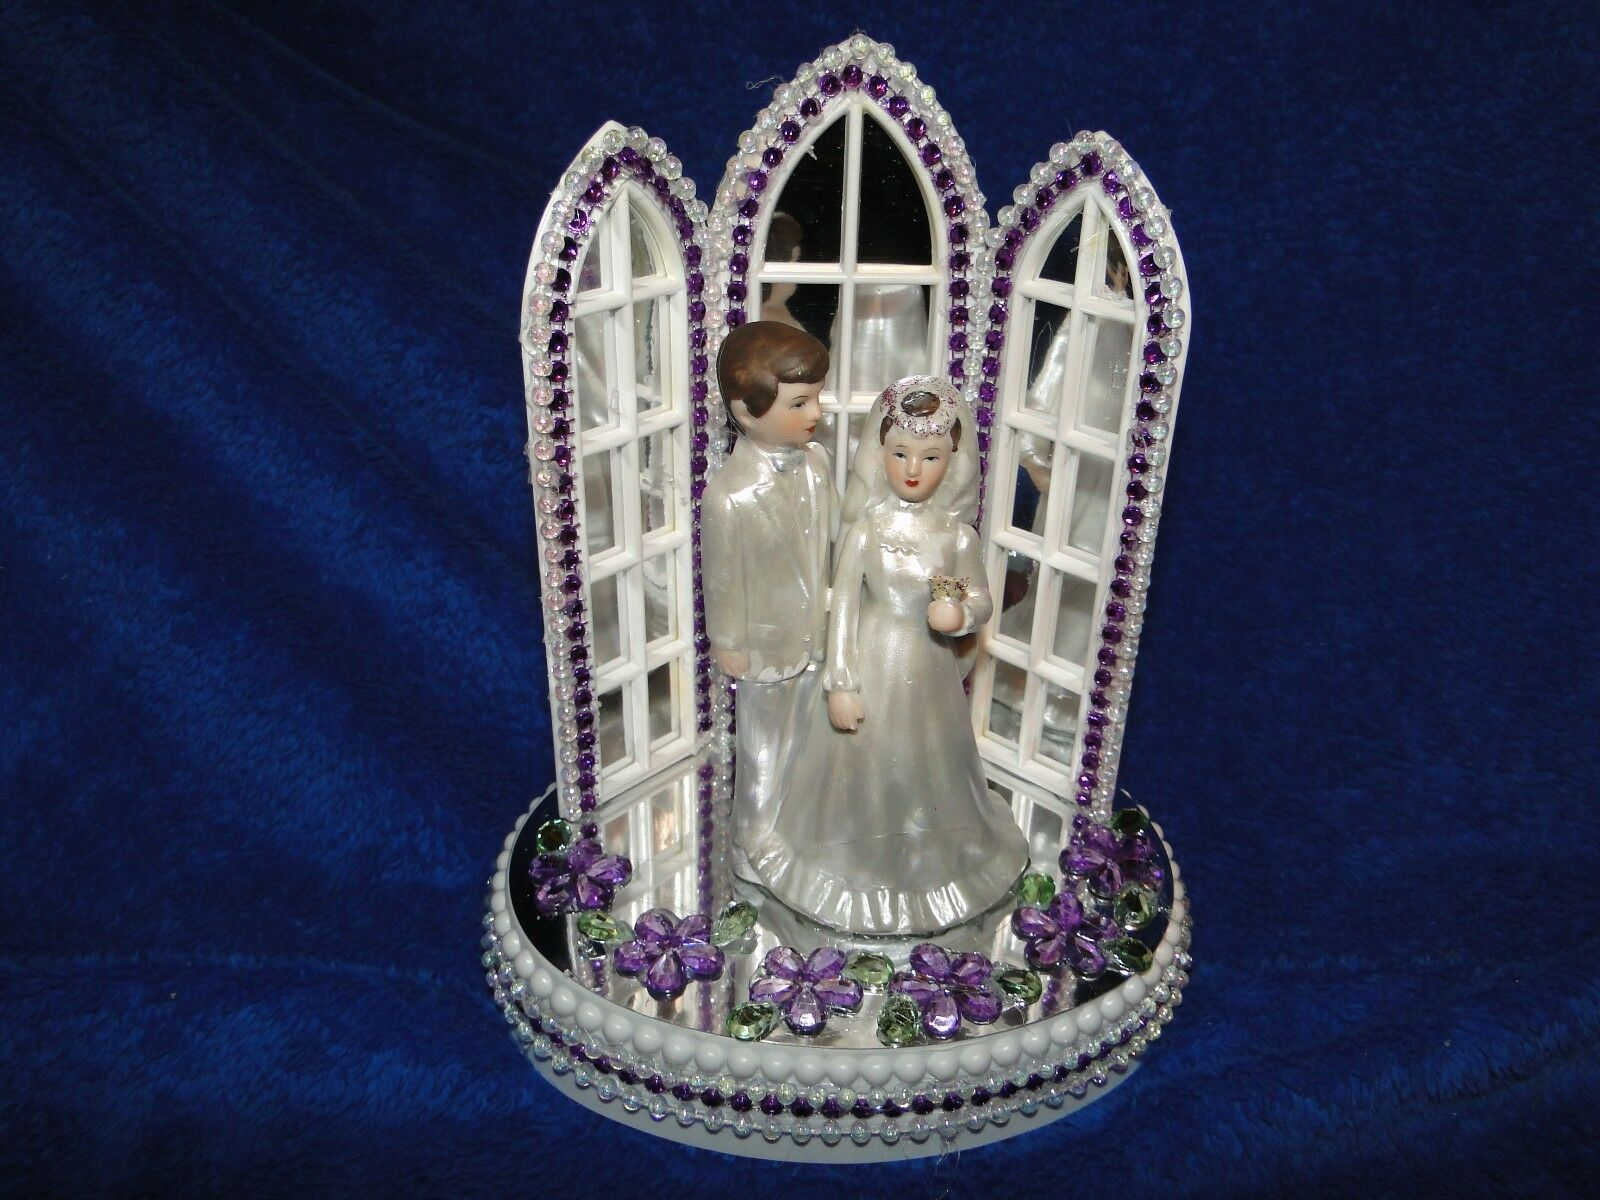 New Chapel Church Mirroruge Windows Cake topper with Bride & Groom & violet Decor